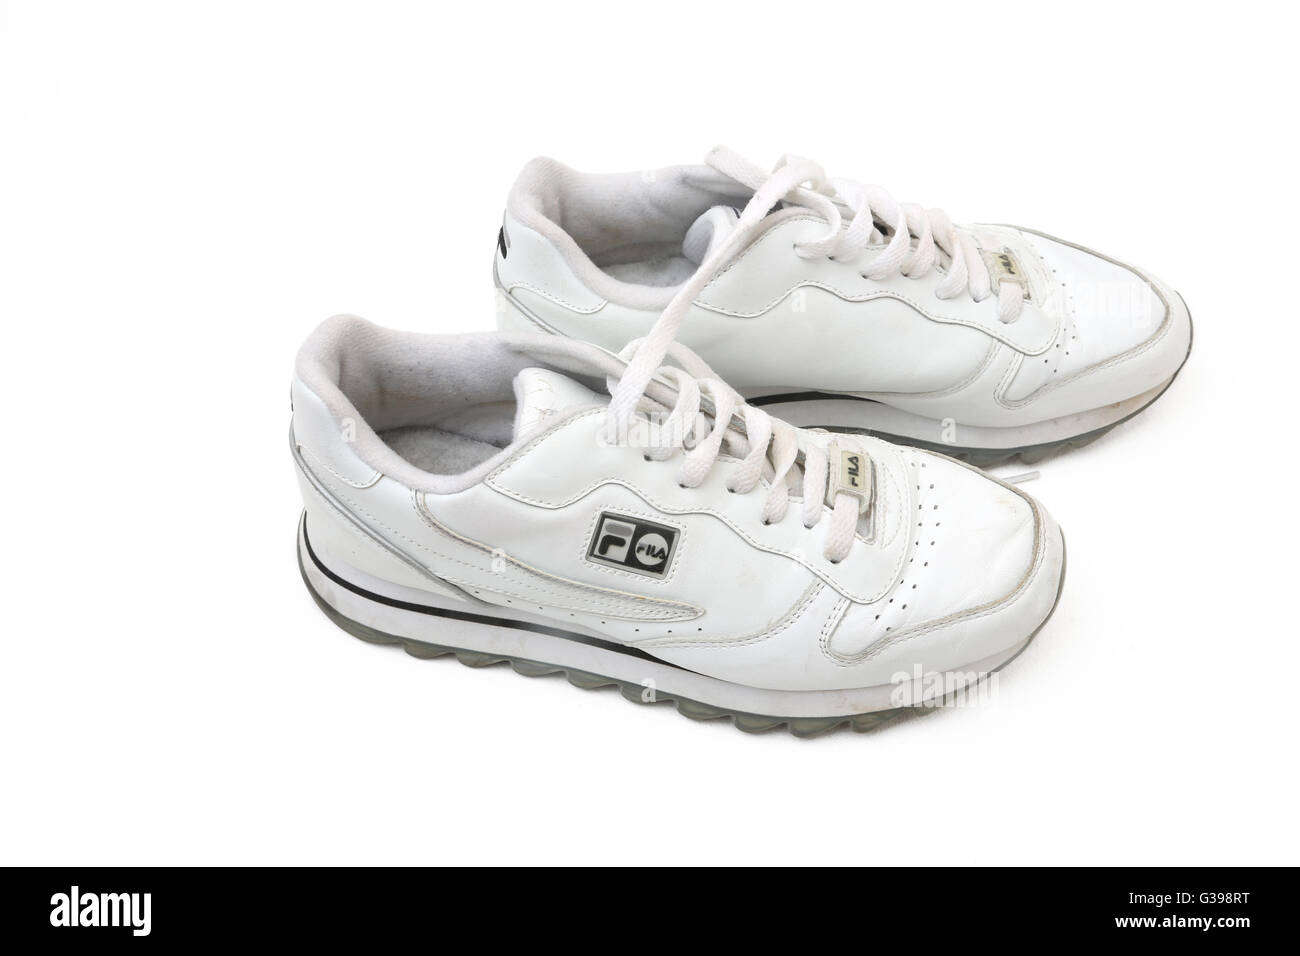 Fila Stockfotos & Fila Bilder Alamy